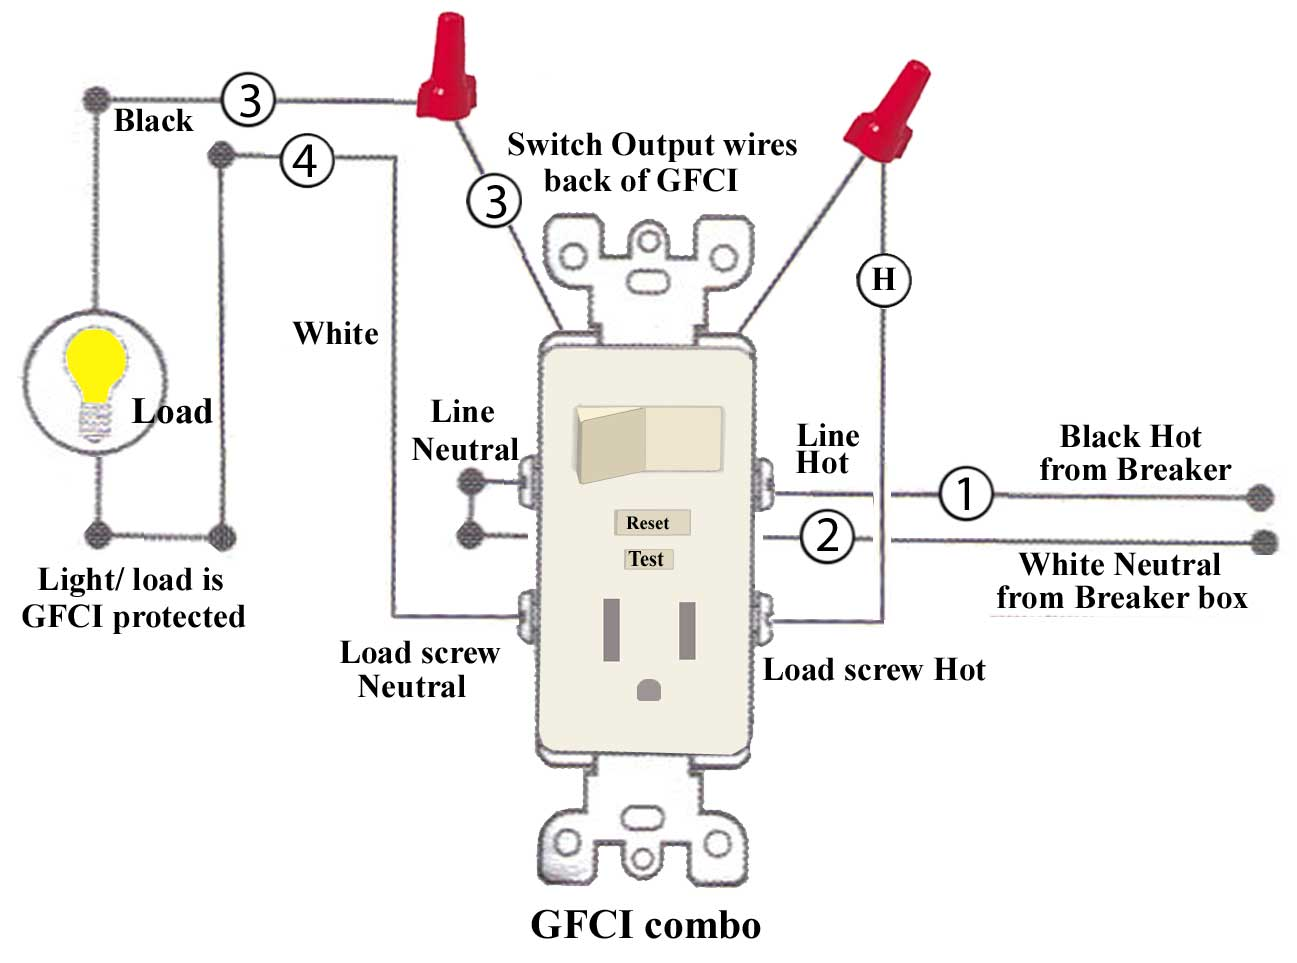 GFCI combo wiring update how to install and troubleshoot gfci